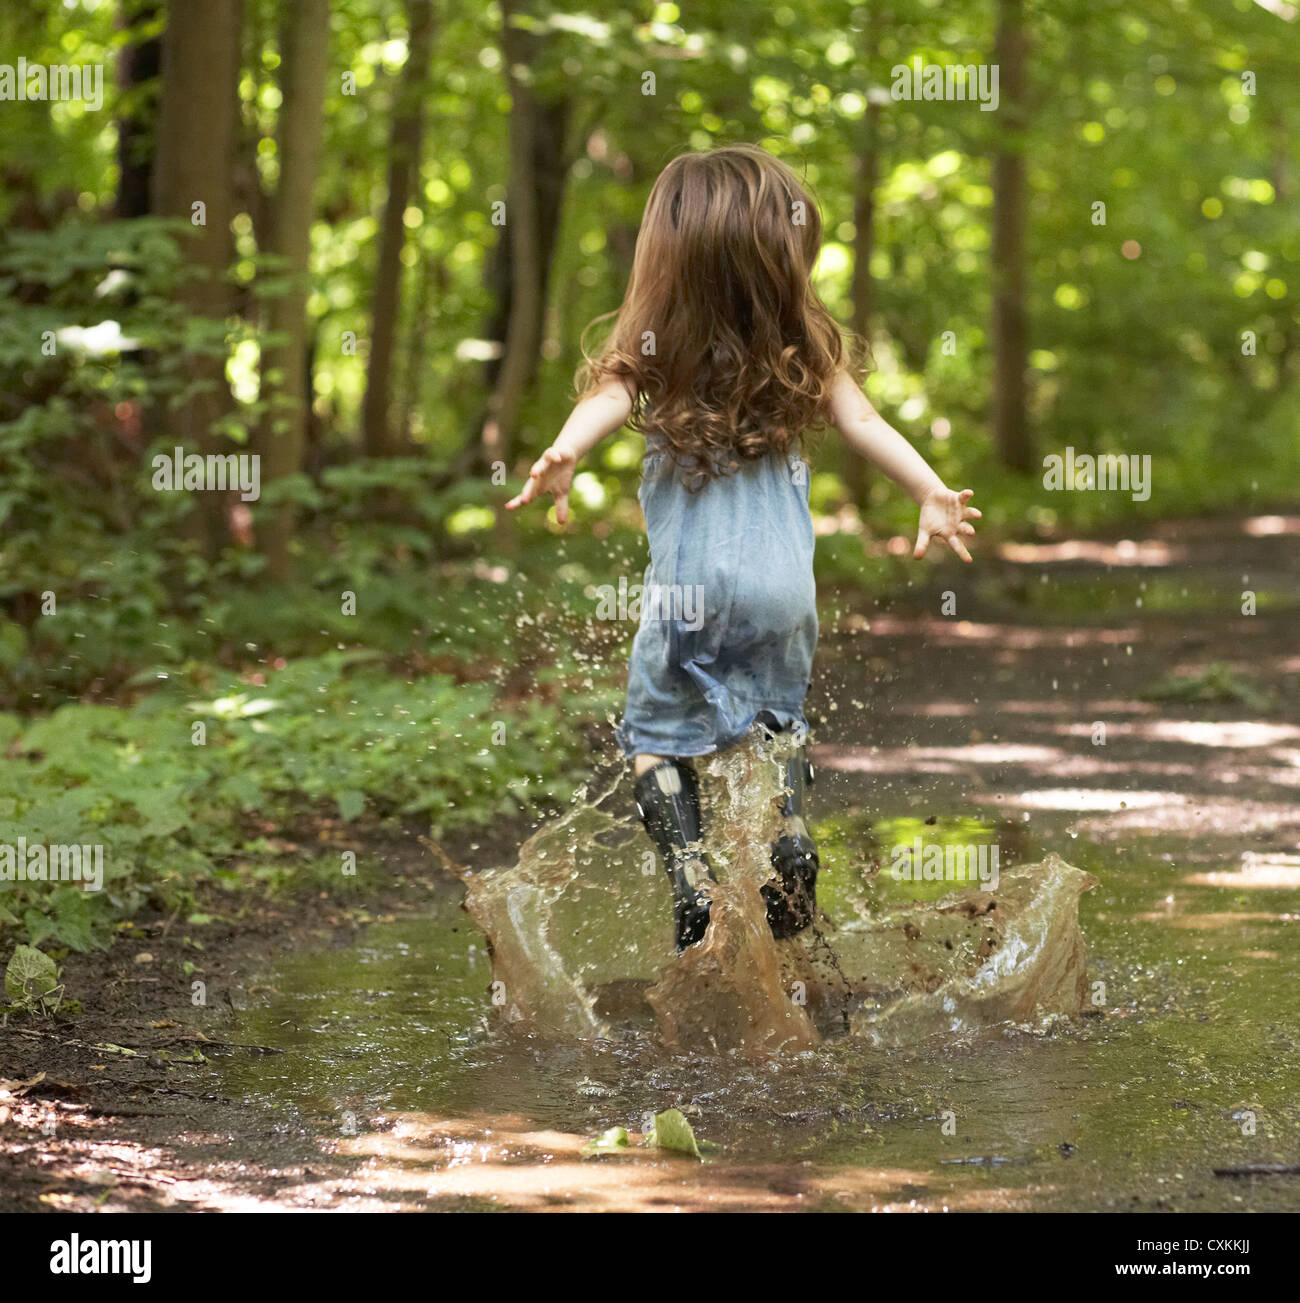 Little girl jumping in puddle - Stock Image